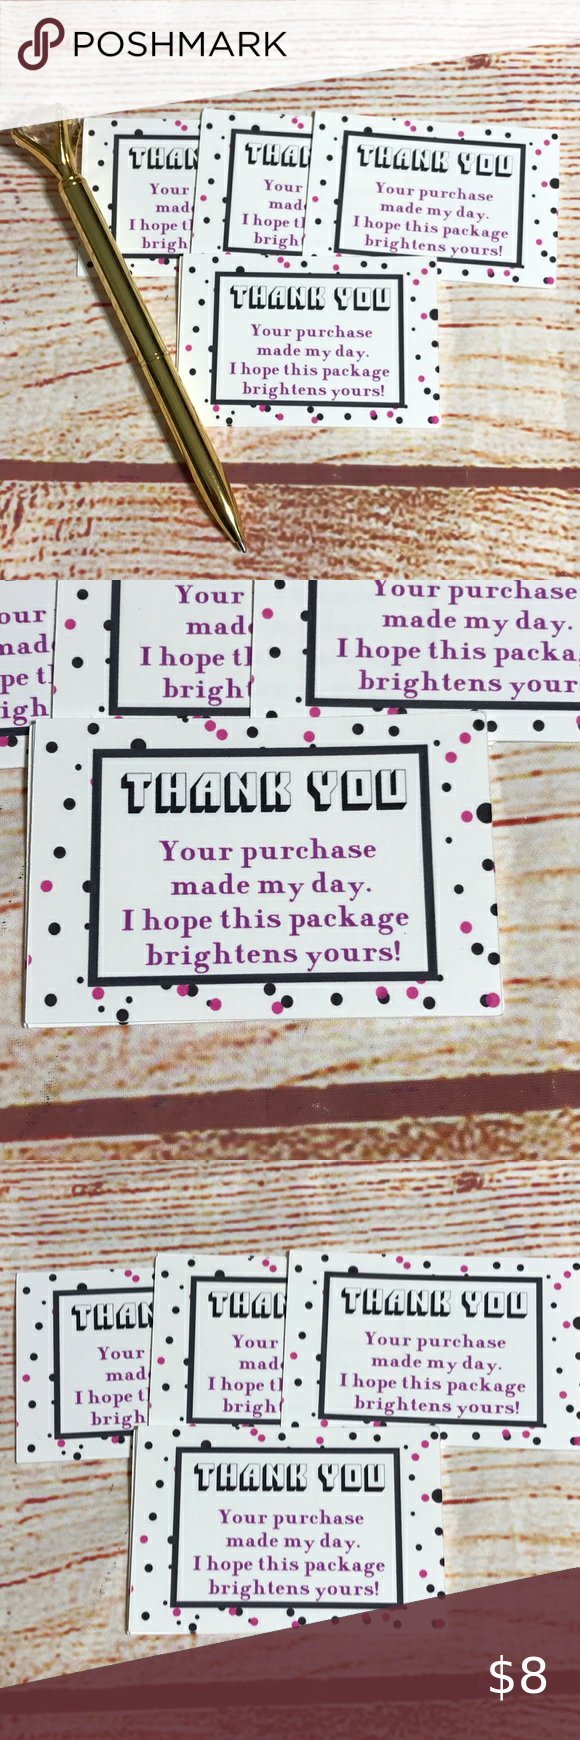 25 Thank You Cards Size 3 X2 Thank You Card Size Thank You Cards Card Sizes